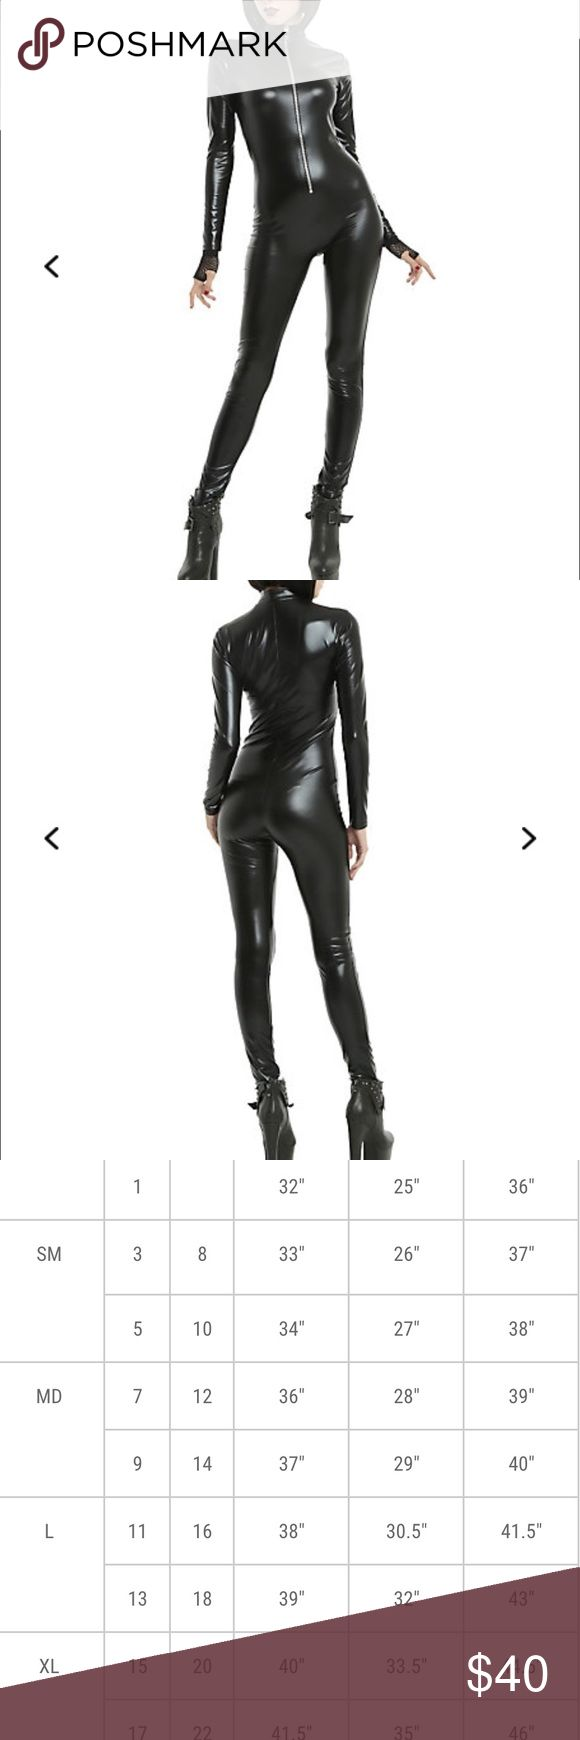 Black full bodysuit catsuit Hot topic! New with tag, size medium. I'm just a little too tall for it at 5'11. Otherwise it'd be amazing. See size chart for measurements.🌟Price Is FIRM🌟 Hot Topic Other